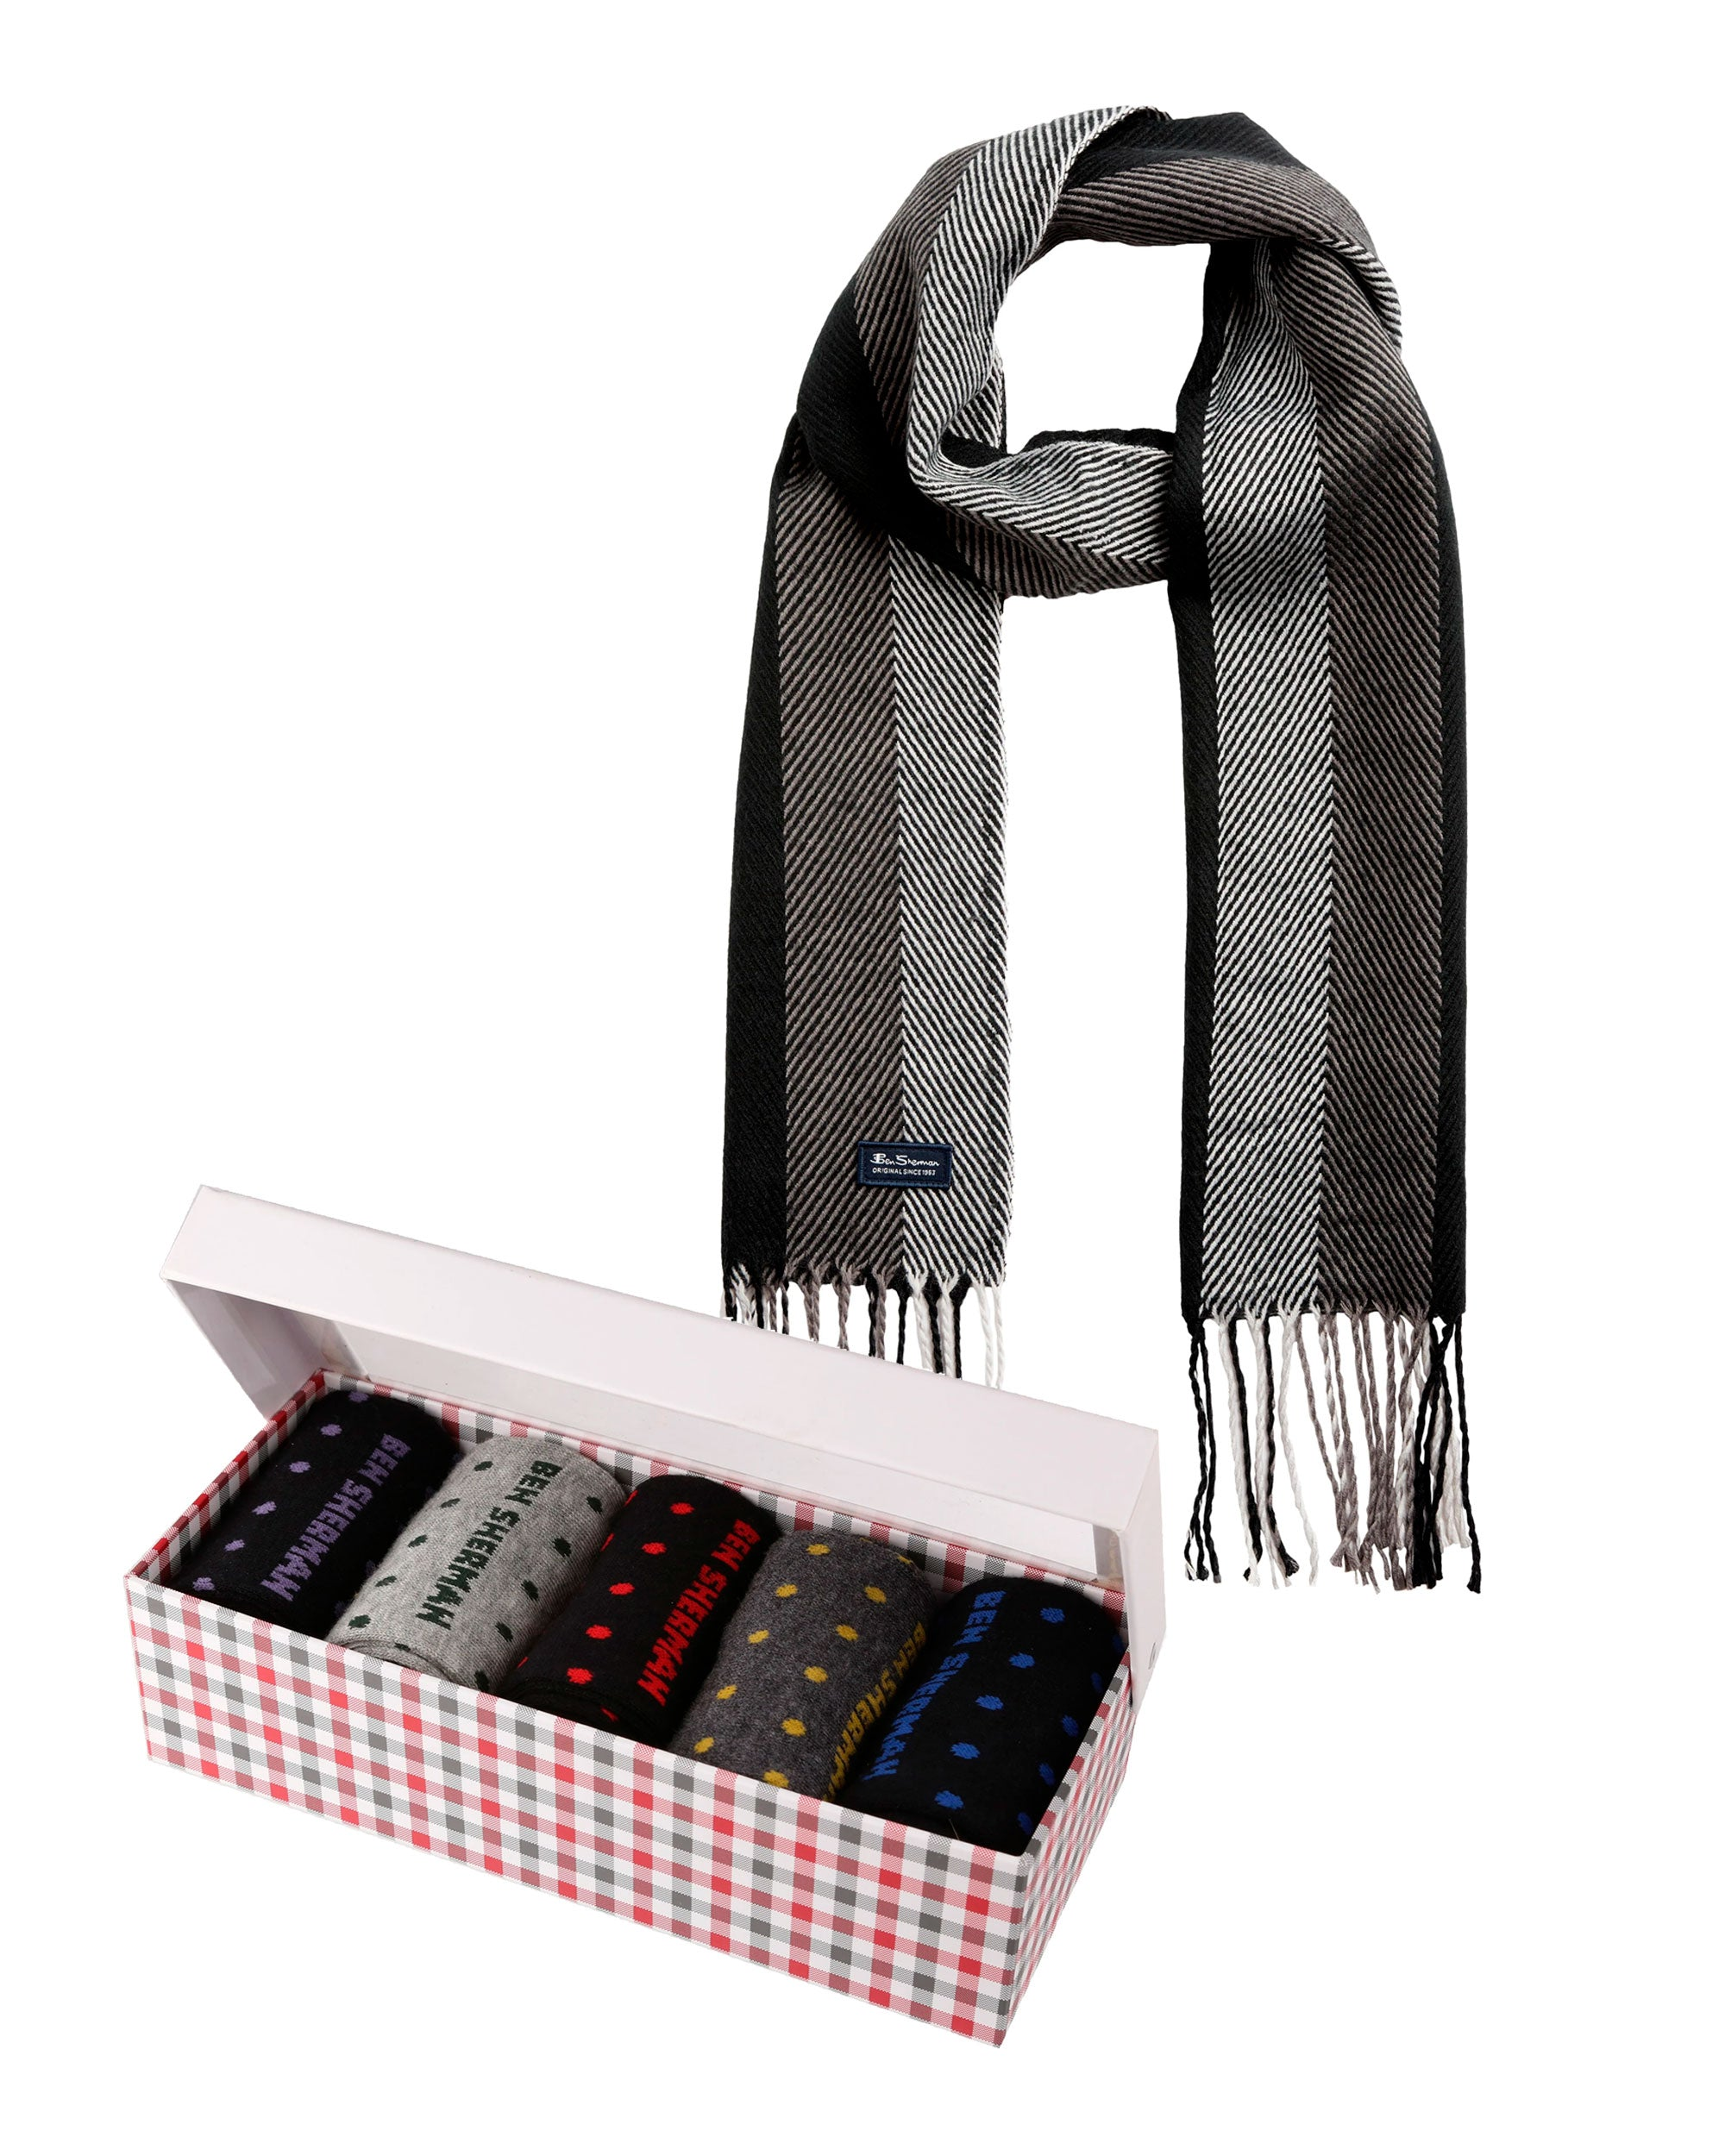 Gift with Purchase: Men's Socks (5-Pack) & Scarf Set - Colors May Vary